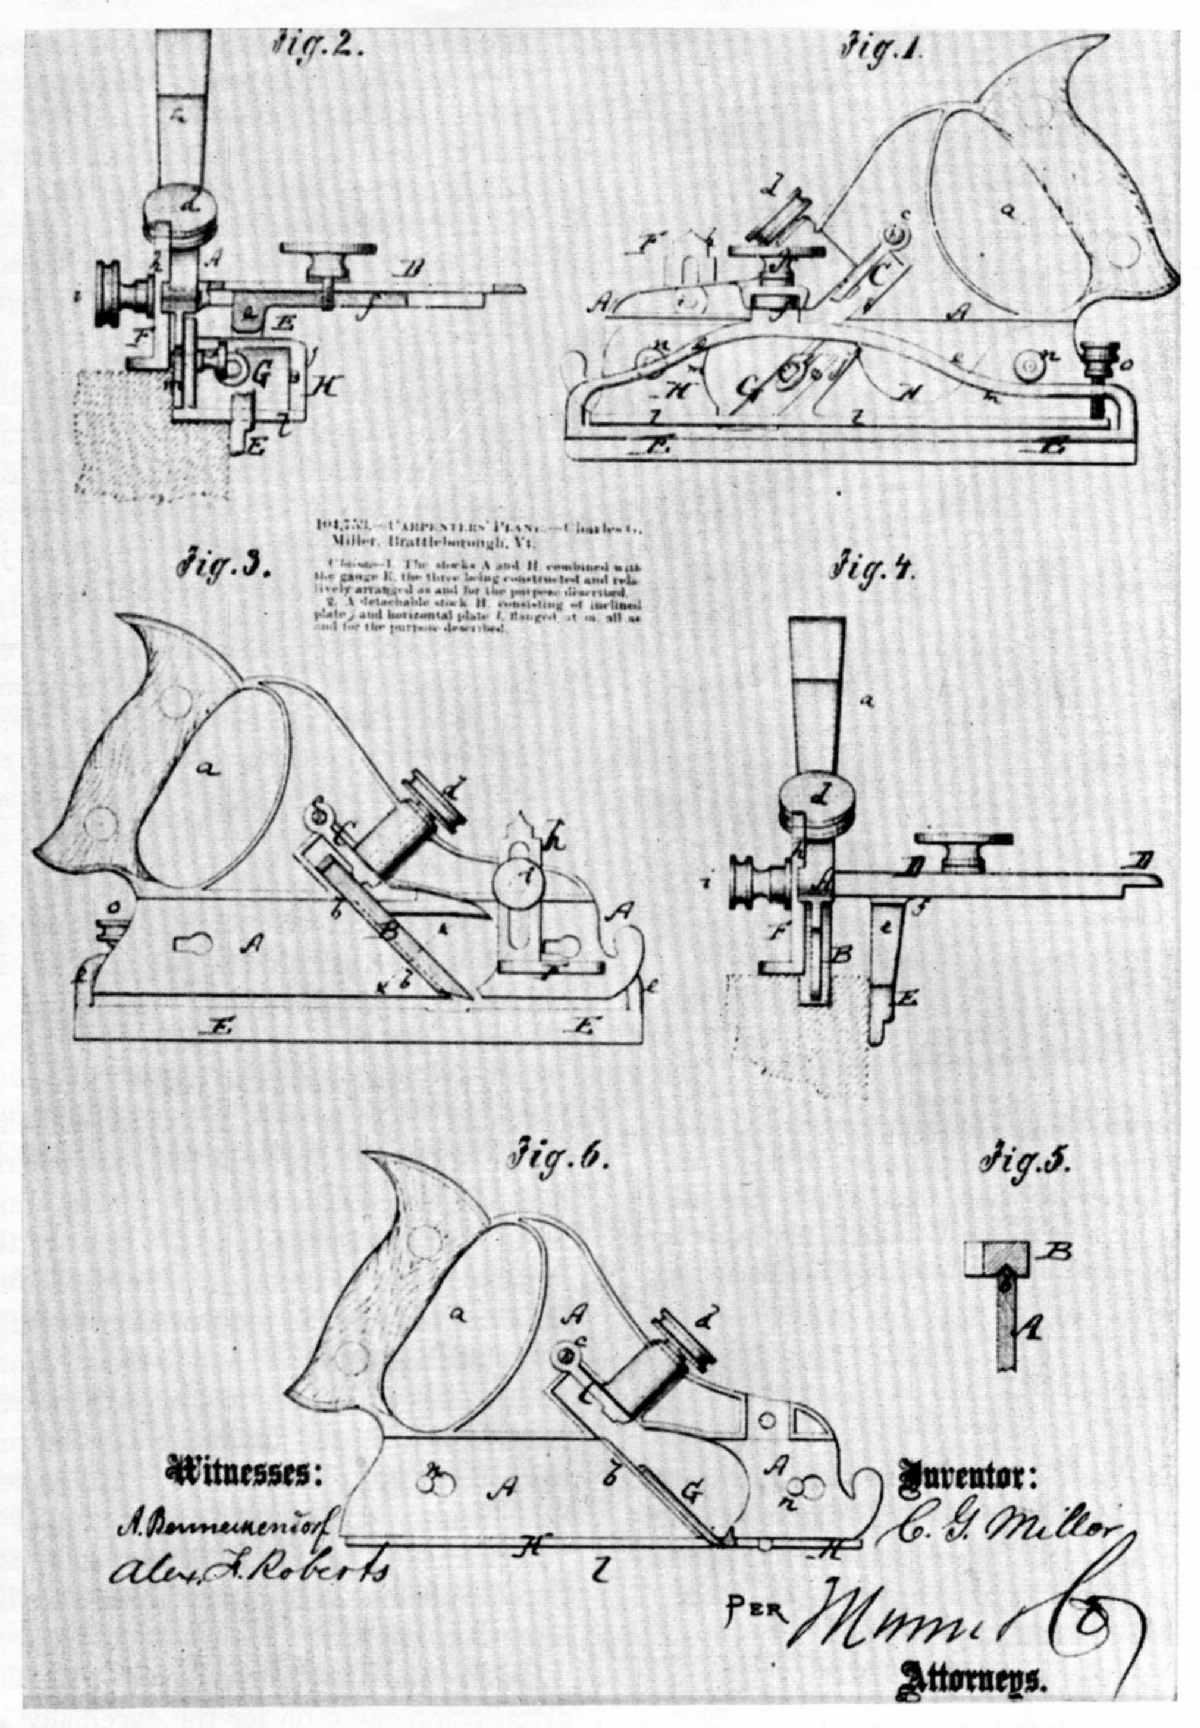 The Project Gutenberg Ebook Of Woodworking Tools 16001900 By Printing Press Diagram As Suggests 1870 Metallic Version Plow Plane Later Produced Stanley And Company Was Patented Charles G Miller A Tool Readily Convertible Into